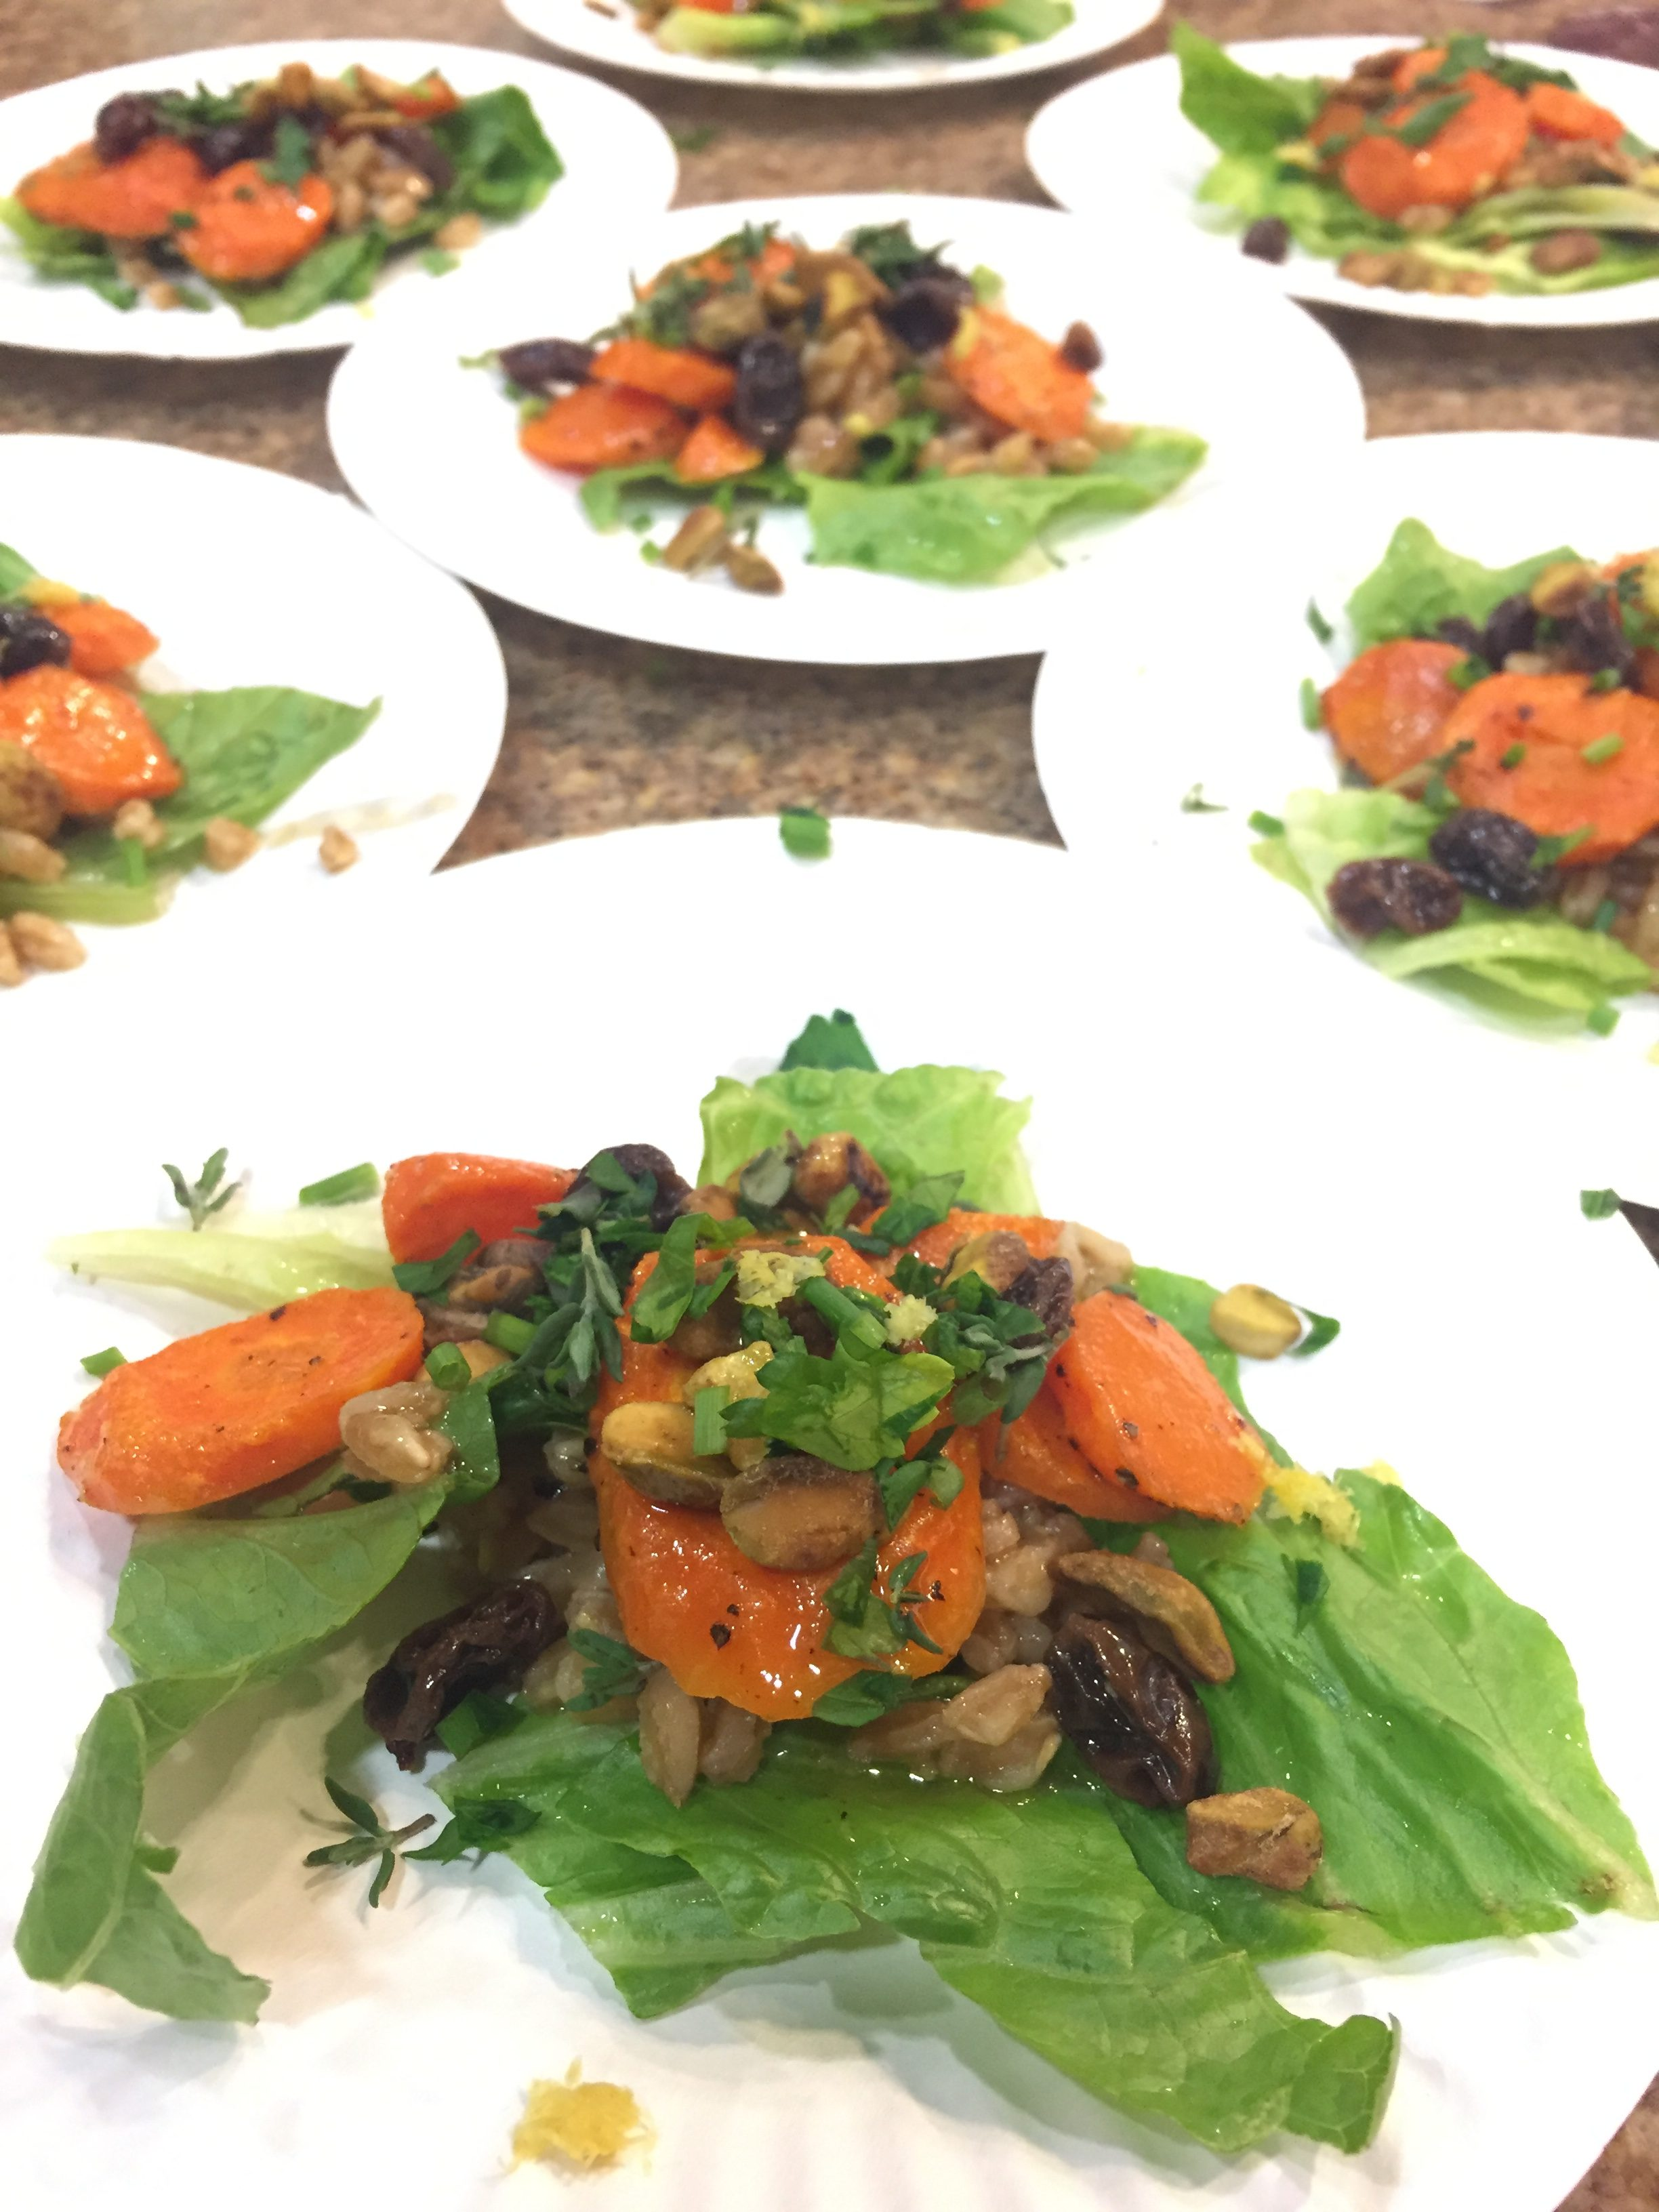 Vegan sensational salad with farro, carrots and pistachios